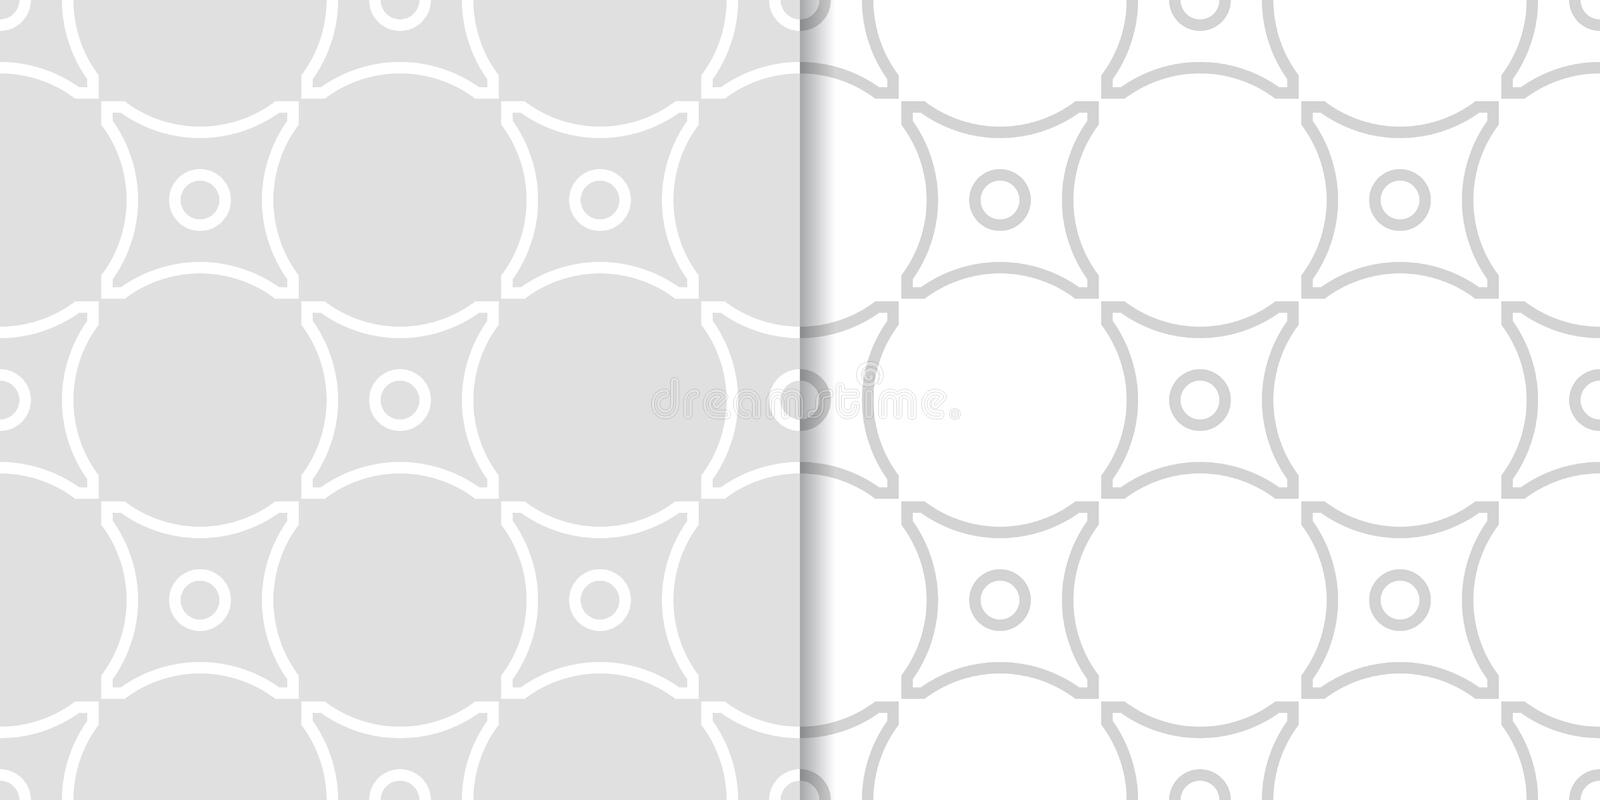 Geometric seamless pattern. Gray background with circle elements vector illustration